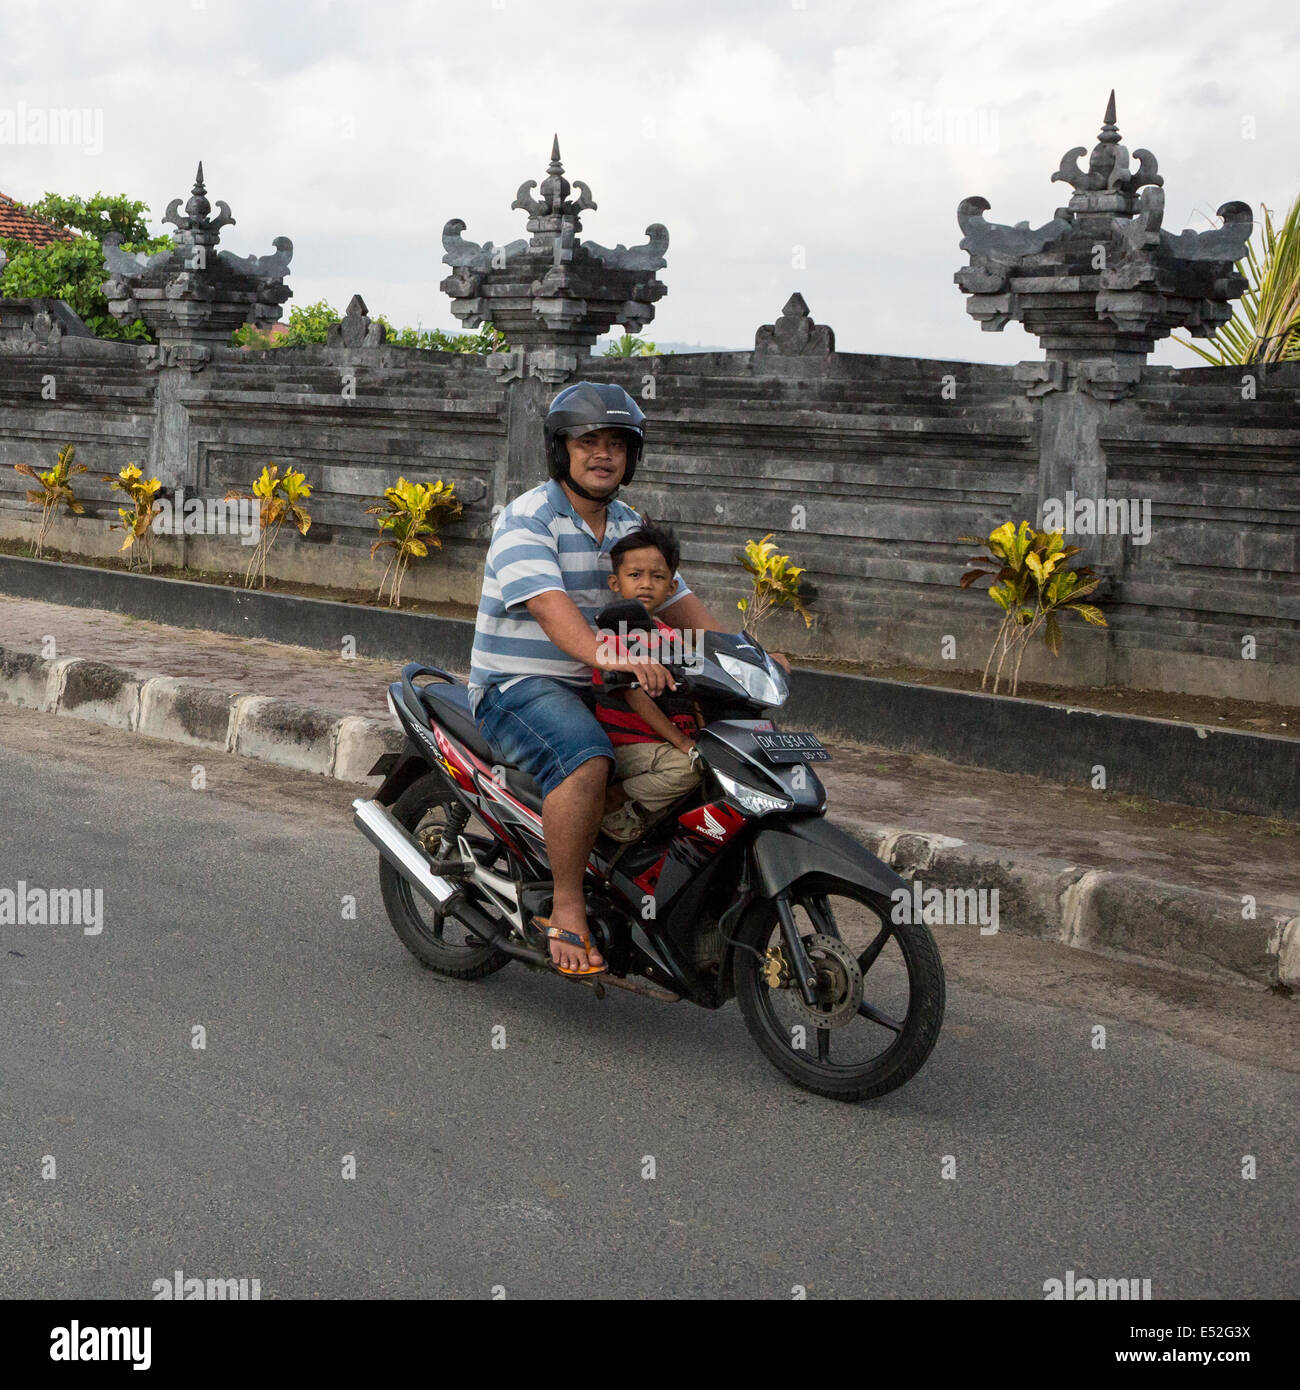 Bali, Indonesia.  Road safety.  Father and Son on Motorbike, no helmet on Boy. - Stock Image